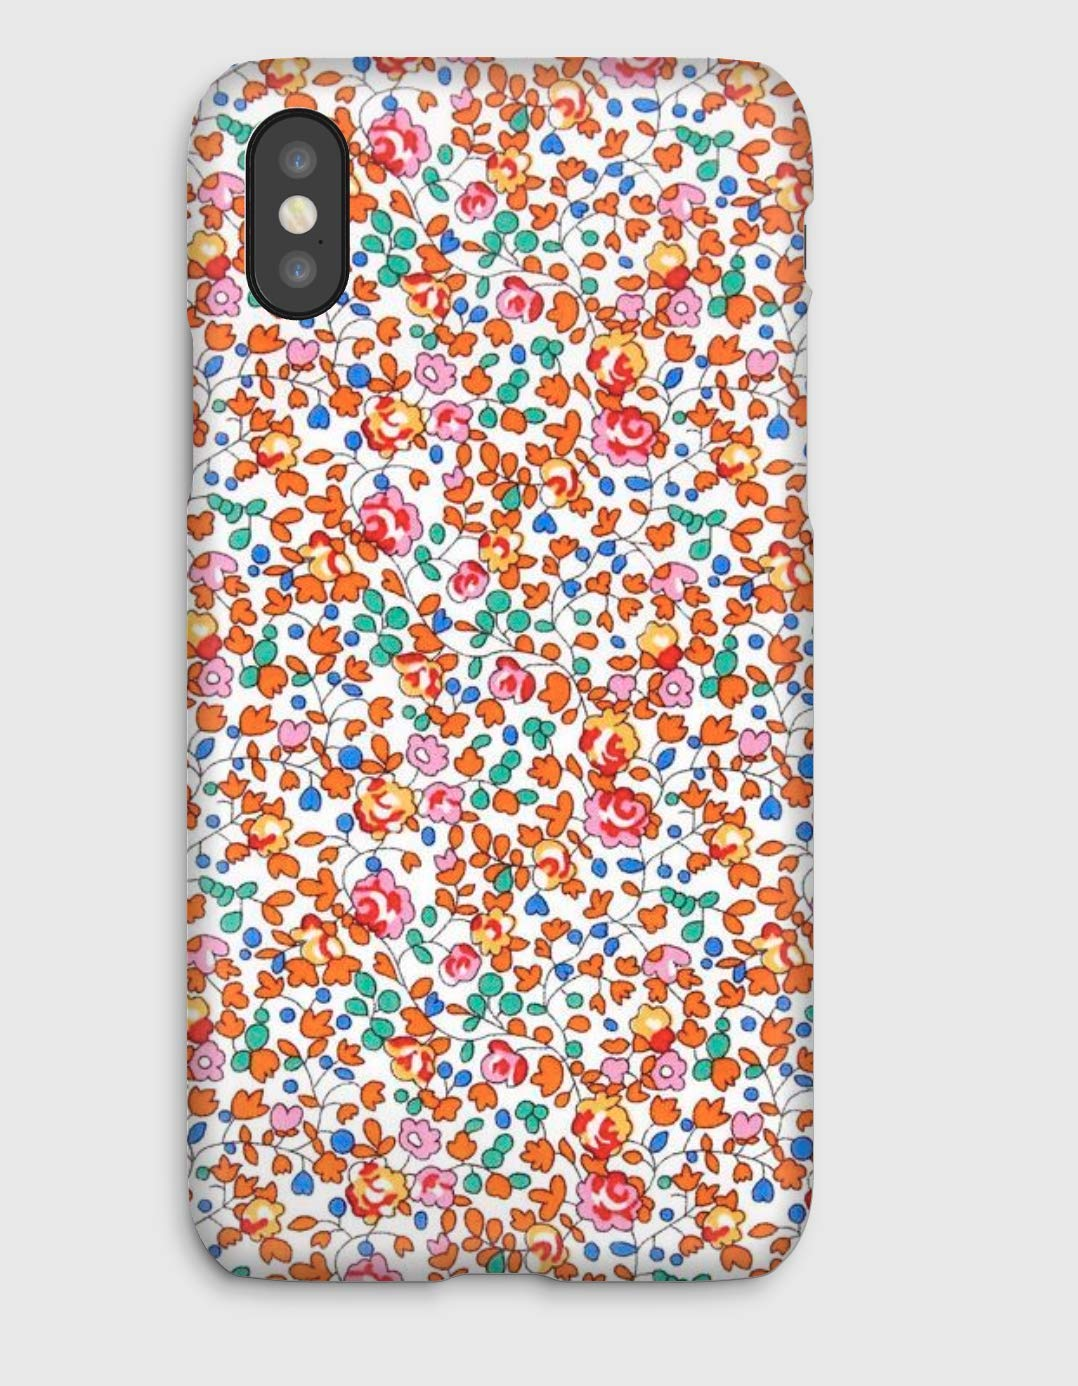 Funda para el iPhone X, 8, 8+, 7, 7+, 6S, 6, 6S+, 6+, 5C, 5, 5S, 5SE, 4S, 4, Liberty Eloise orange